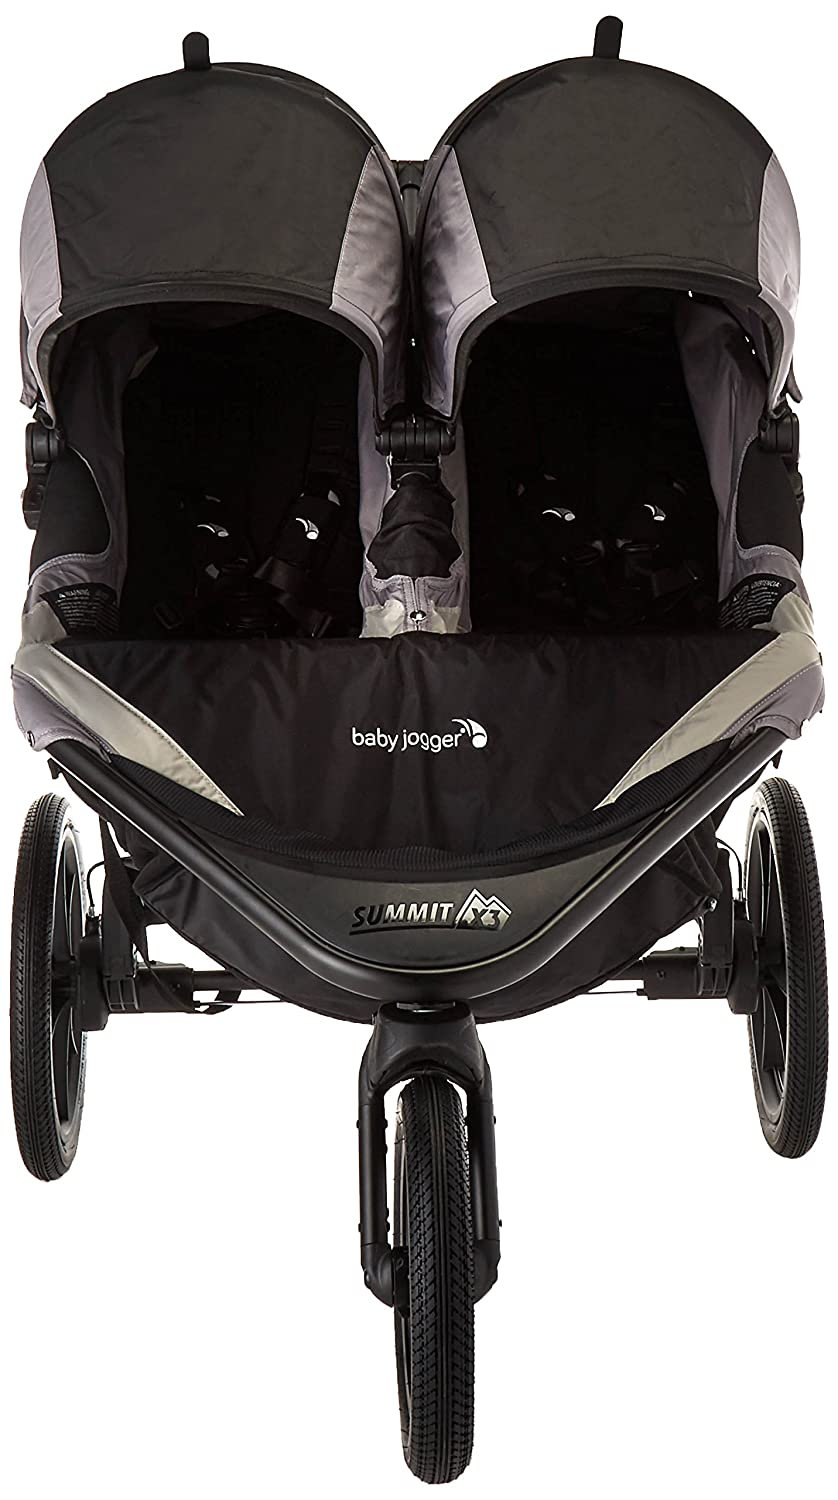 Baby Jogger Summit X3 Double Jogging Stroller – 2016 Air-Filled Rubber Tires All-Wheel Suspension Quick Fold Jogging Stroller, Black Gray